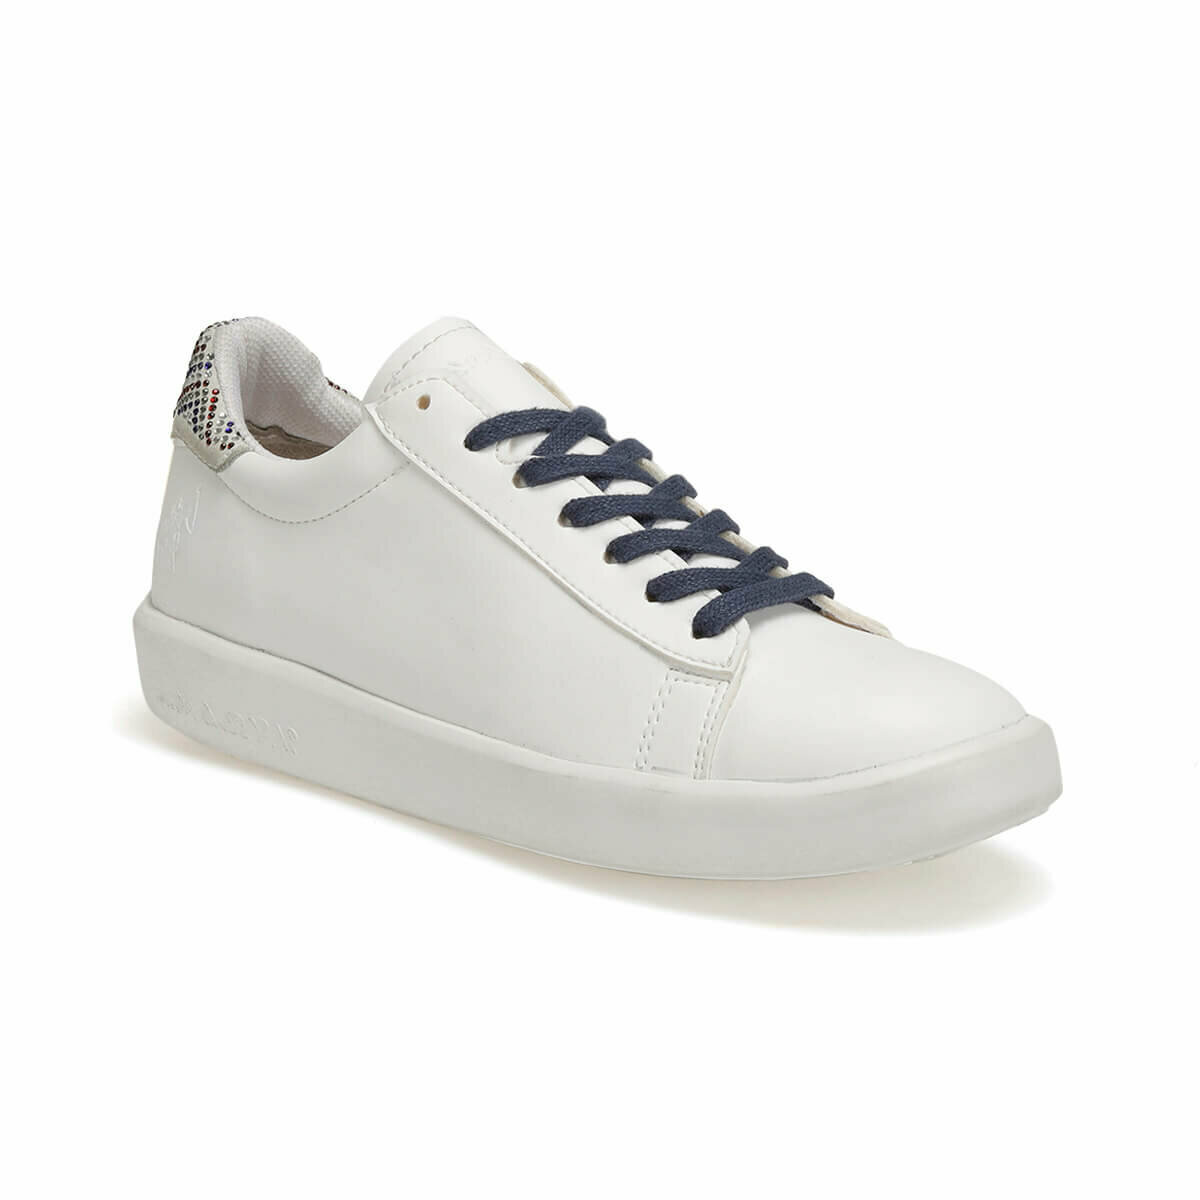 FLO ELITE White Women 'S Sneaker Shoes U.S. POLO ASSN.